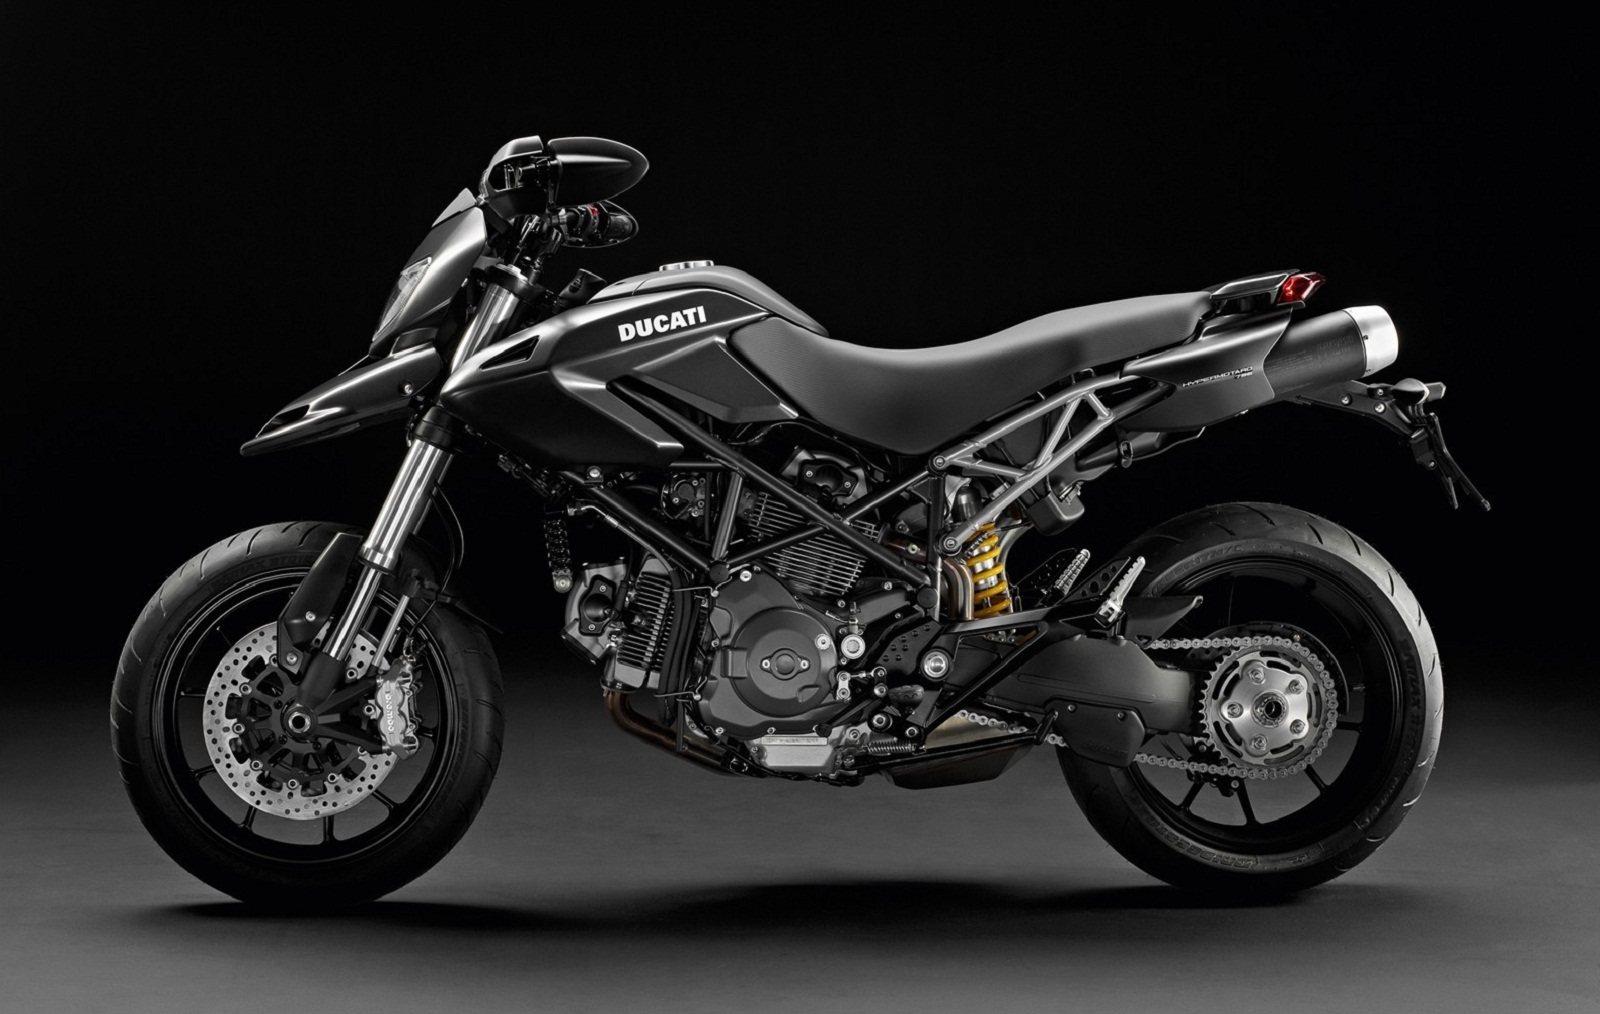 2012 Ducati Hypermotard 796 Review - Top Speed